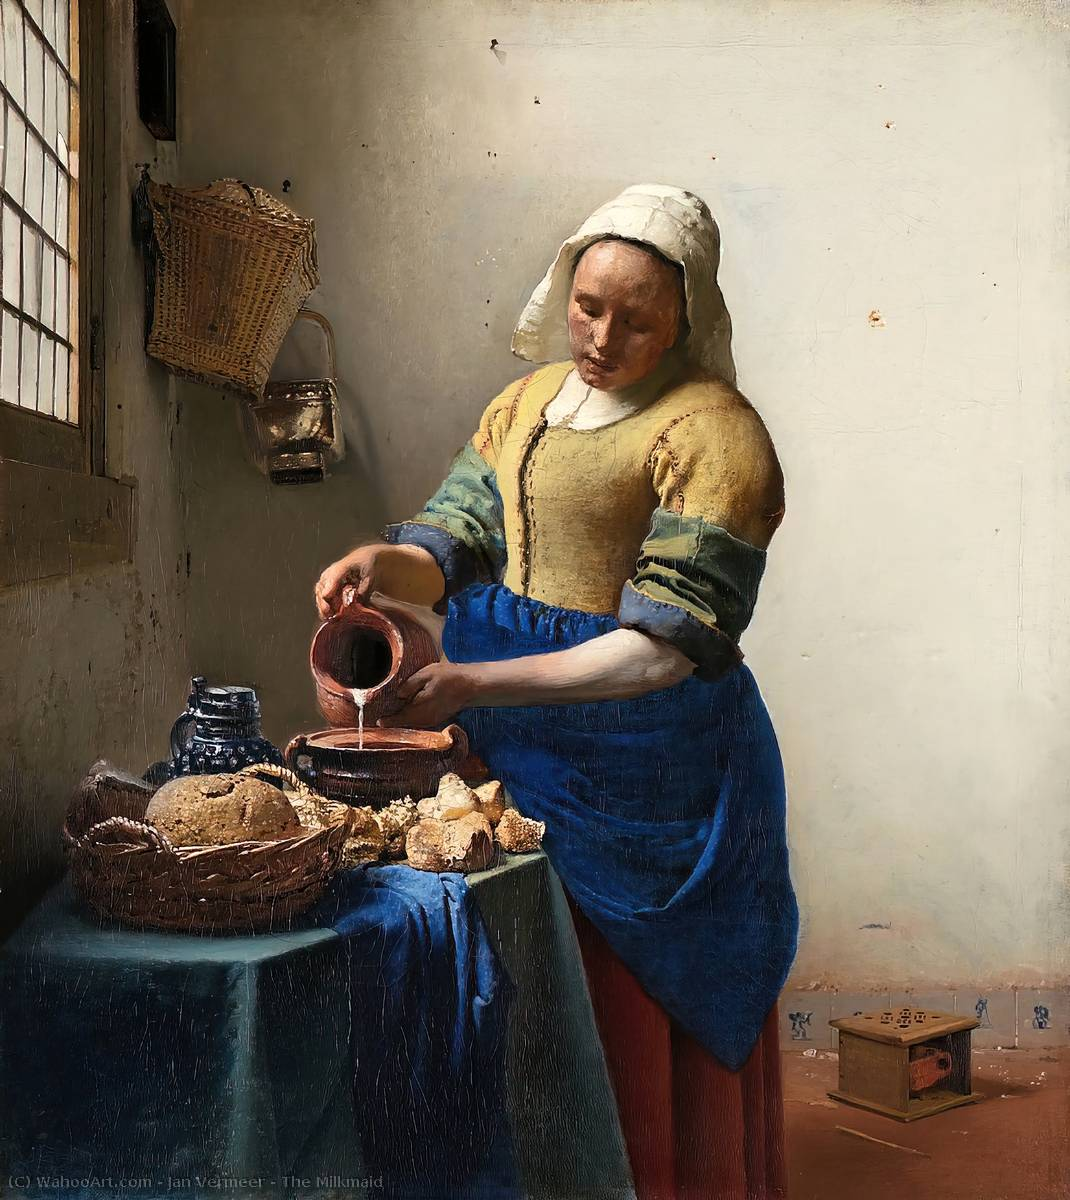 Achat Reproductions D'œuvres D'art | La Laitière de Jan Vermeer | Most-Famous-Paintings.com